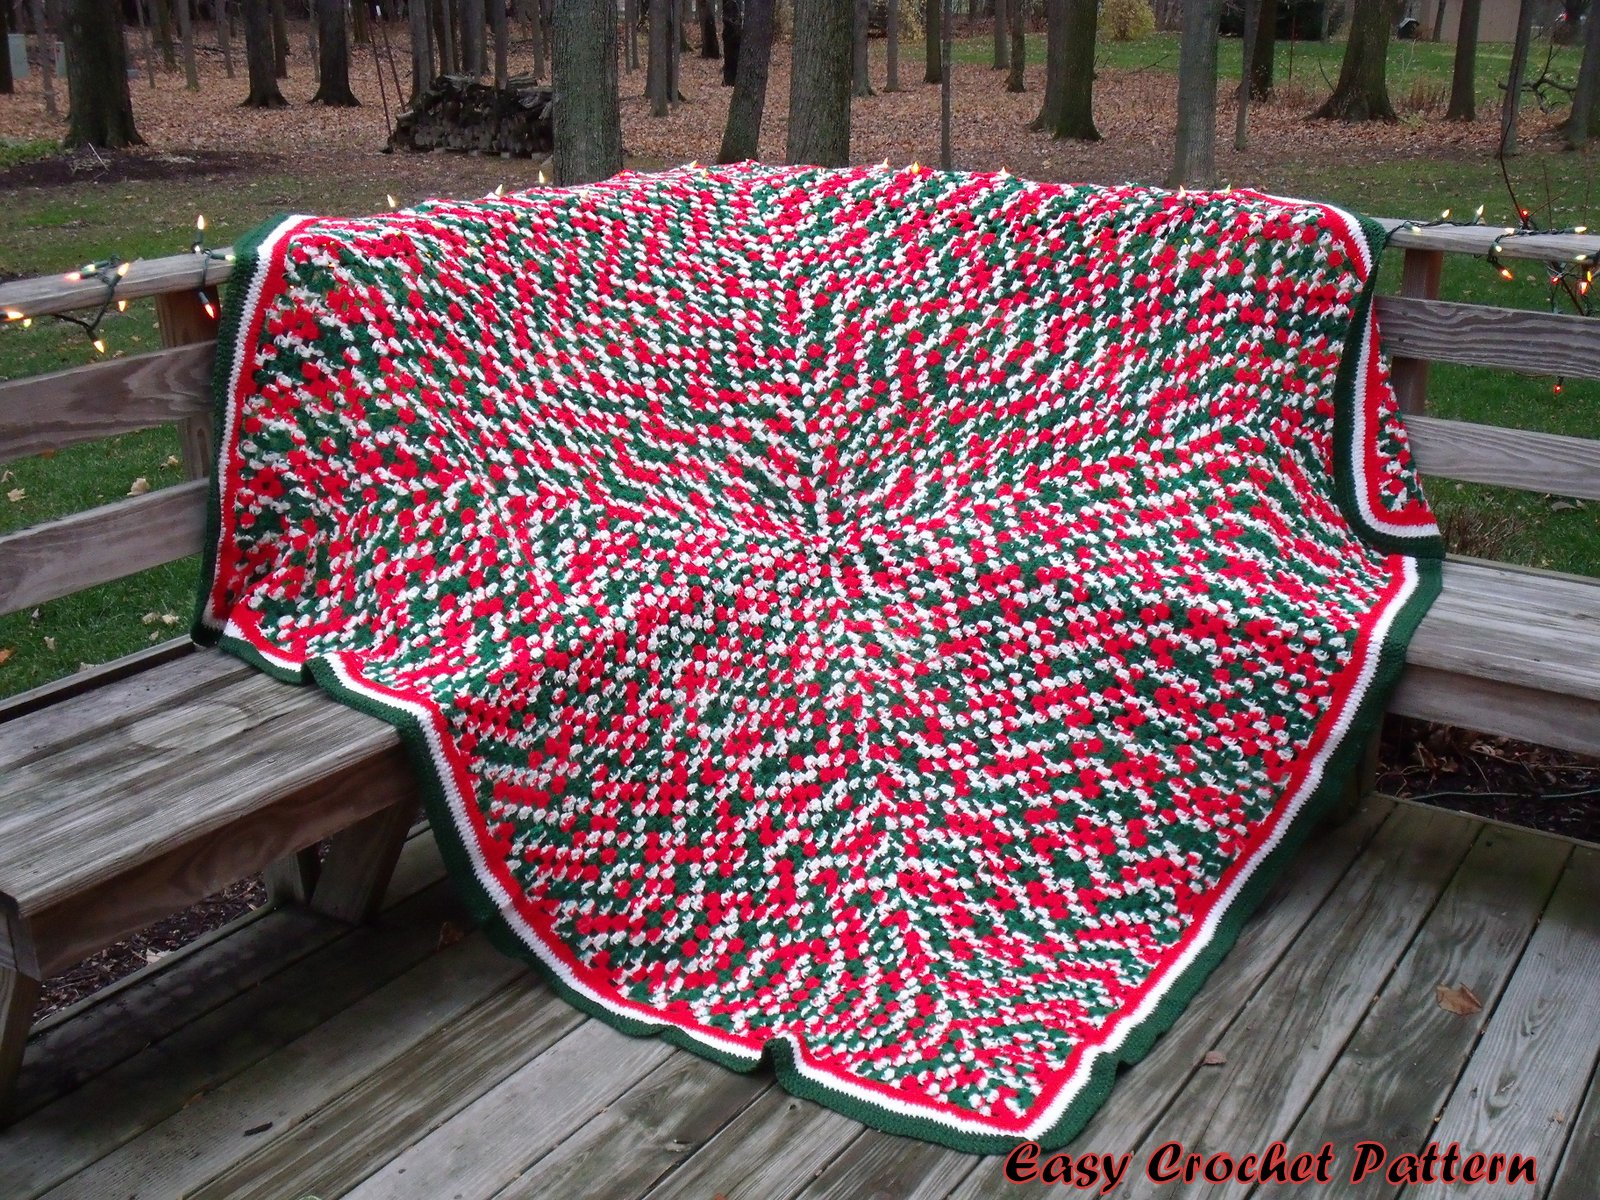 Crochet Afghan Pattern : Easy Crochet Pattern: Crocheted Christmas Afghans and Tree Skirt